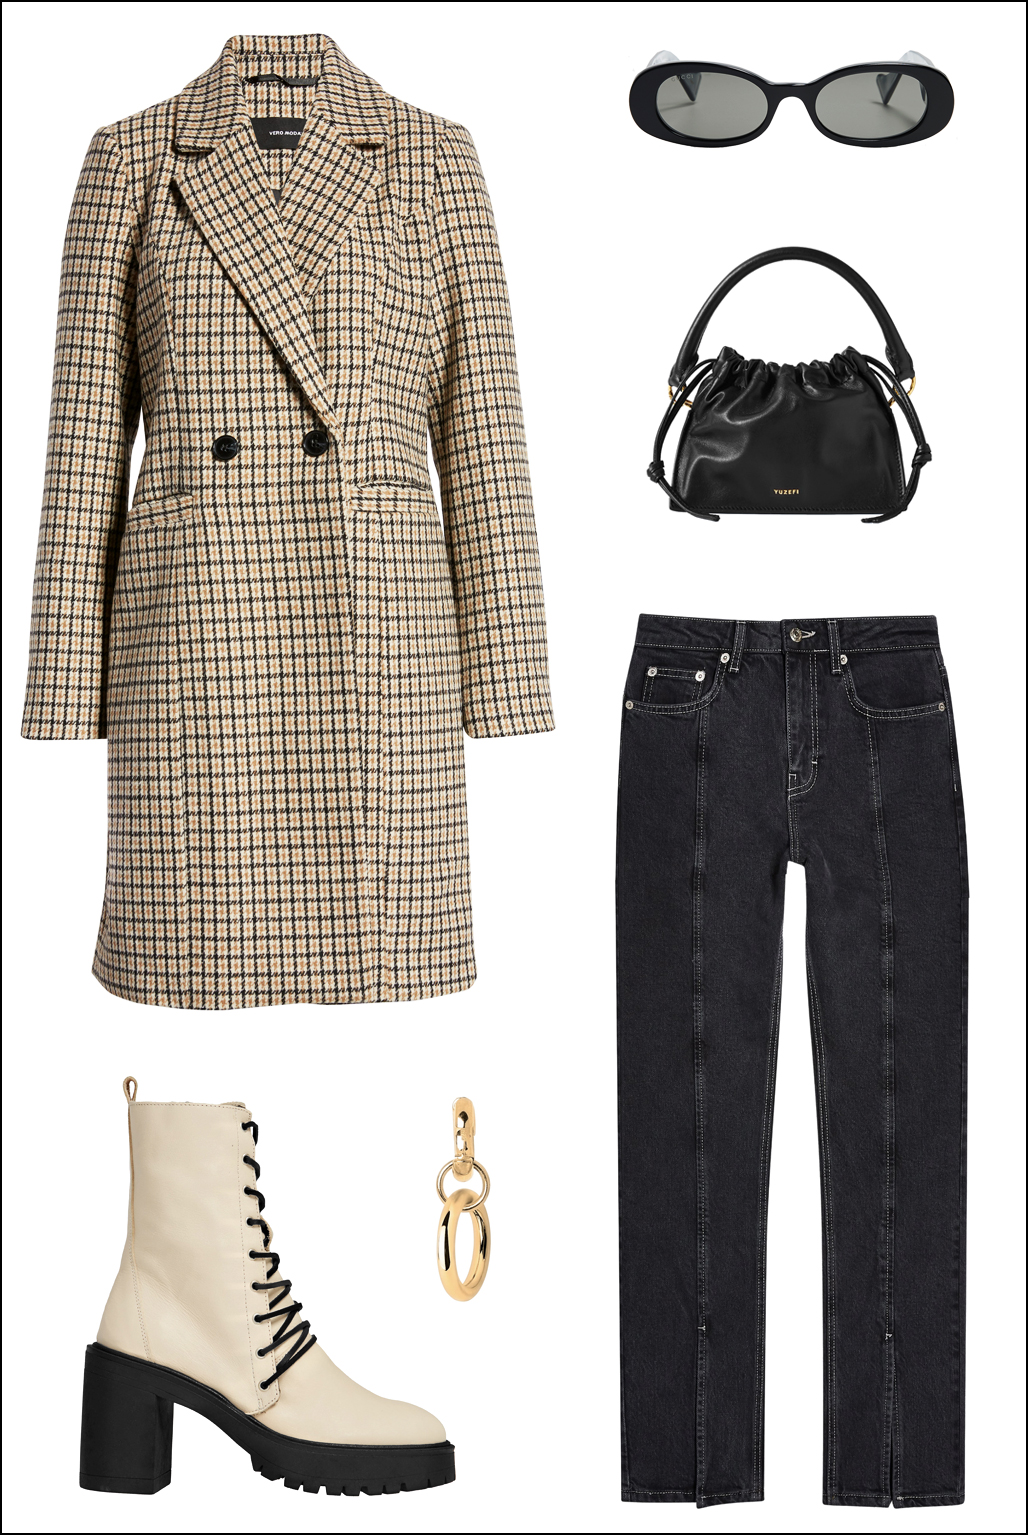 How to Wear 2 of Winter's Biggest Fashion Trends: Plaid Coat and Lug-Sole Boots